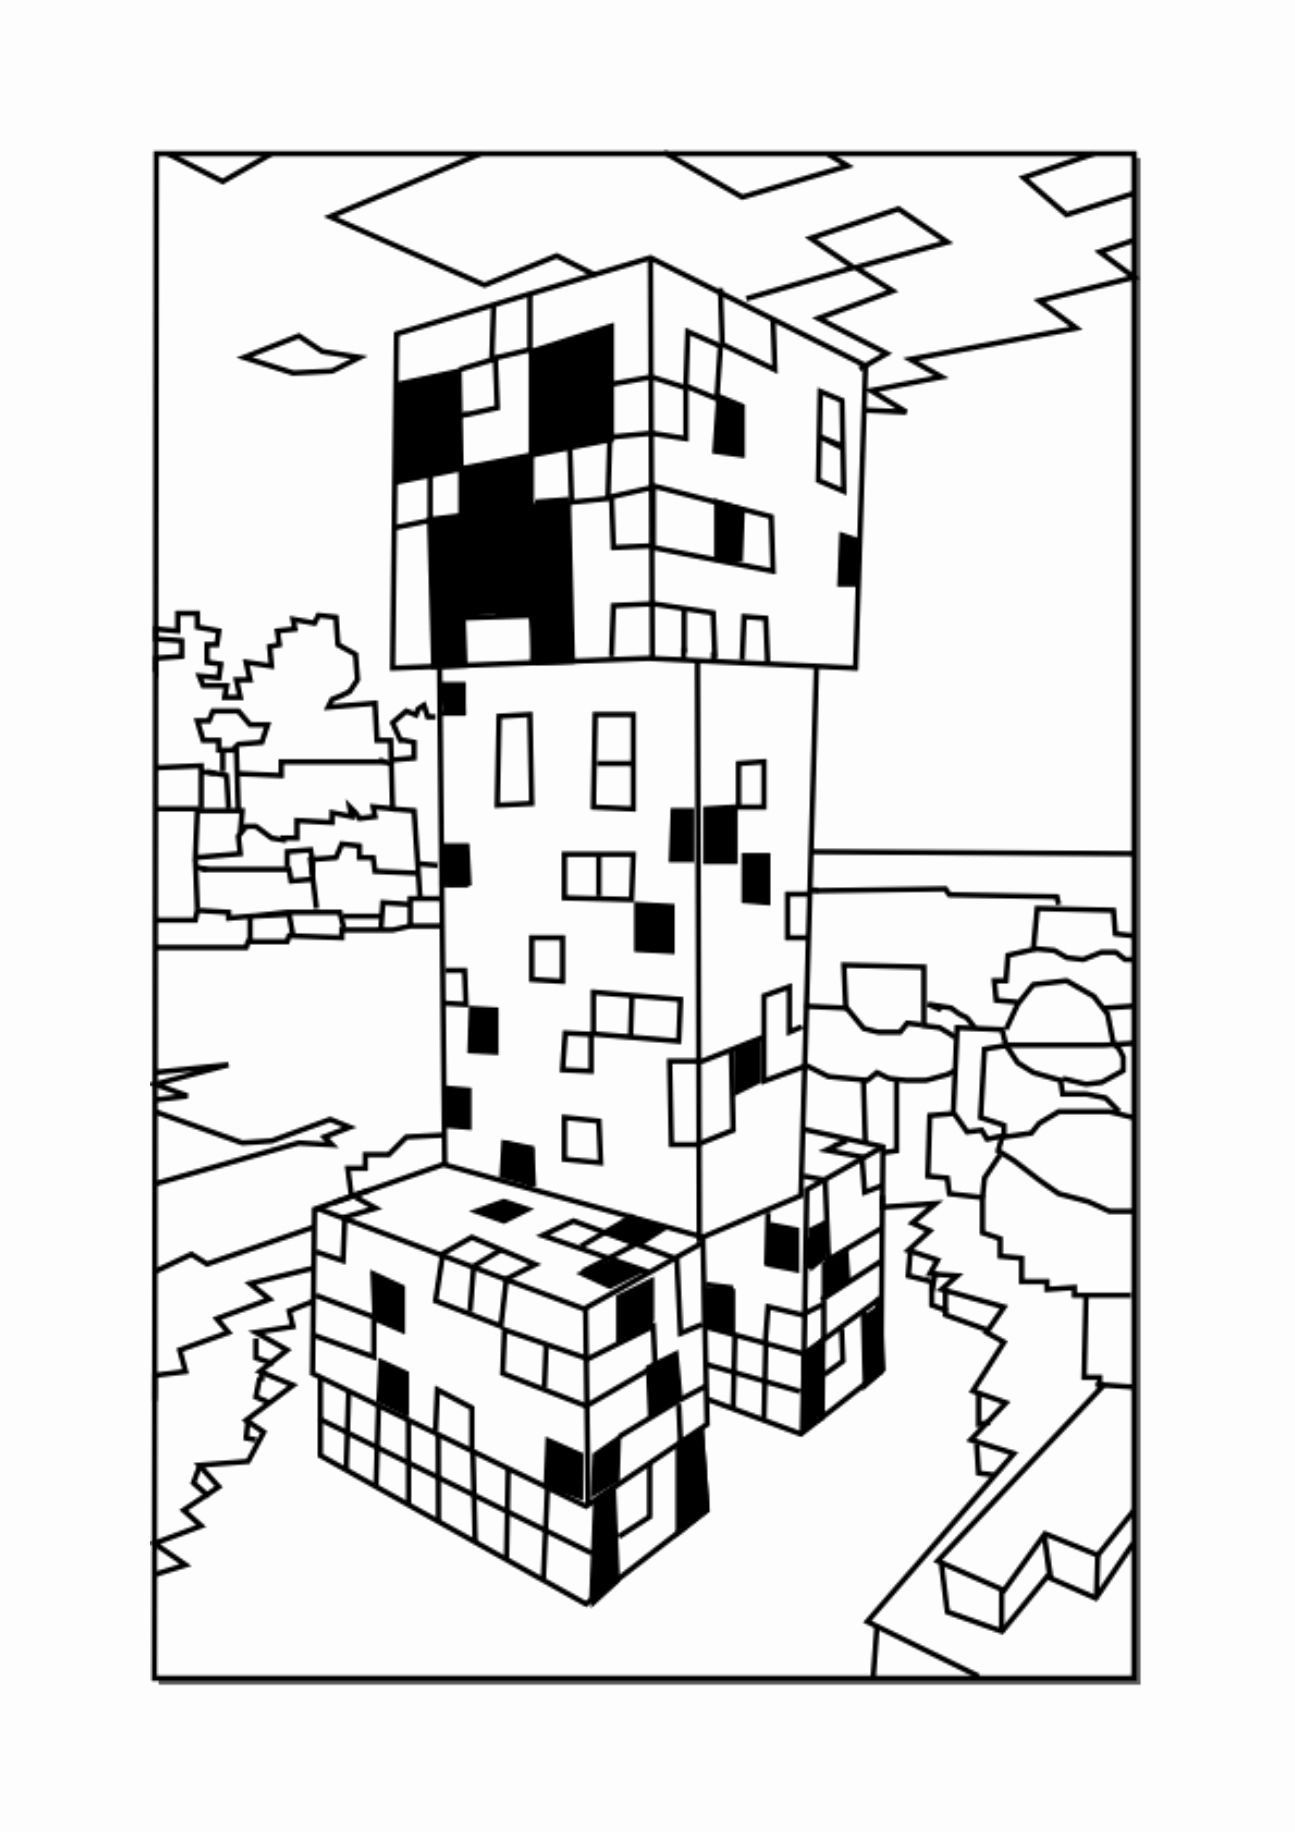 Minecraft Free Coloring Page Youngandtae Com Minecraft Coloring Pages Coloring Pages Inspirational Coloring Pages